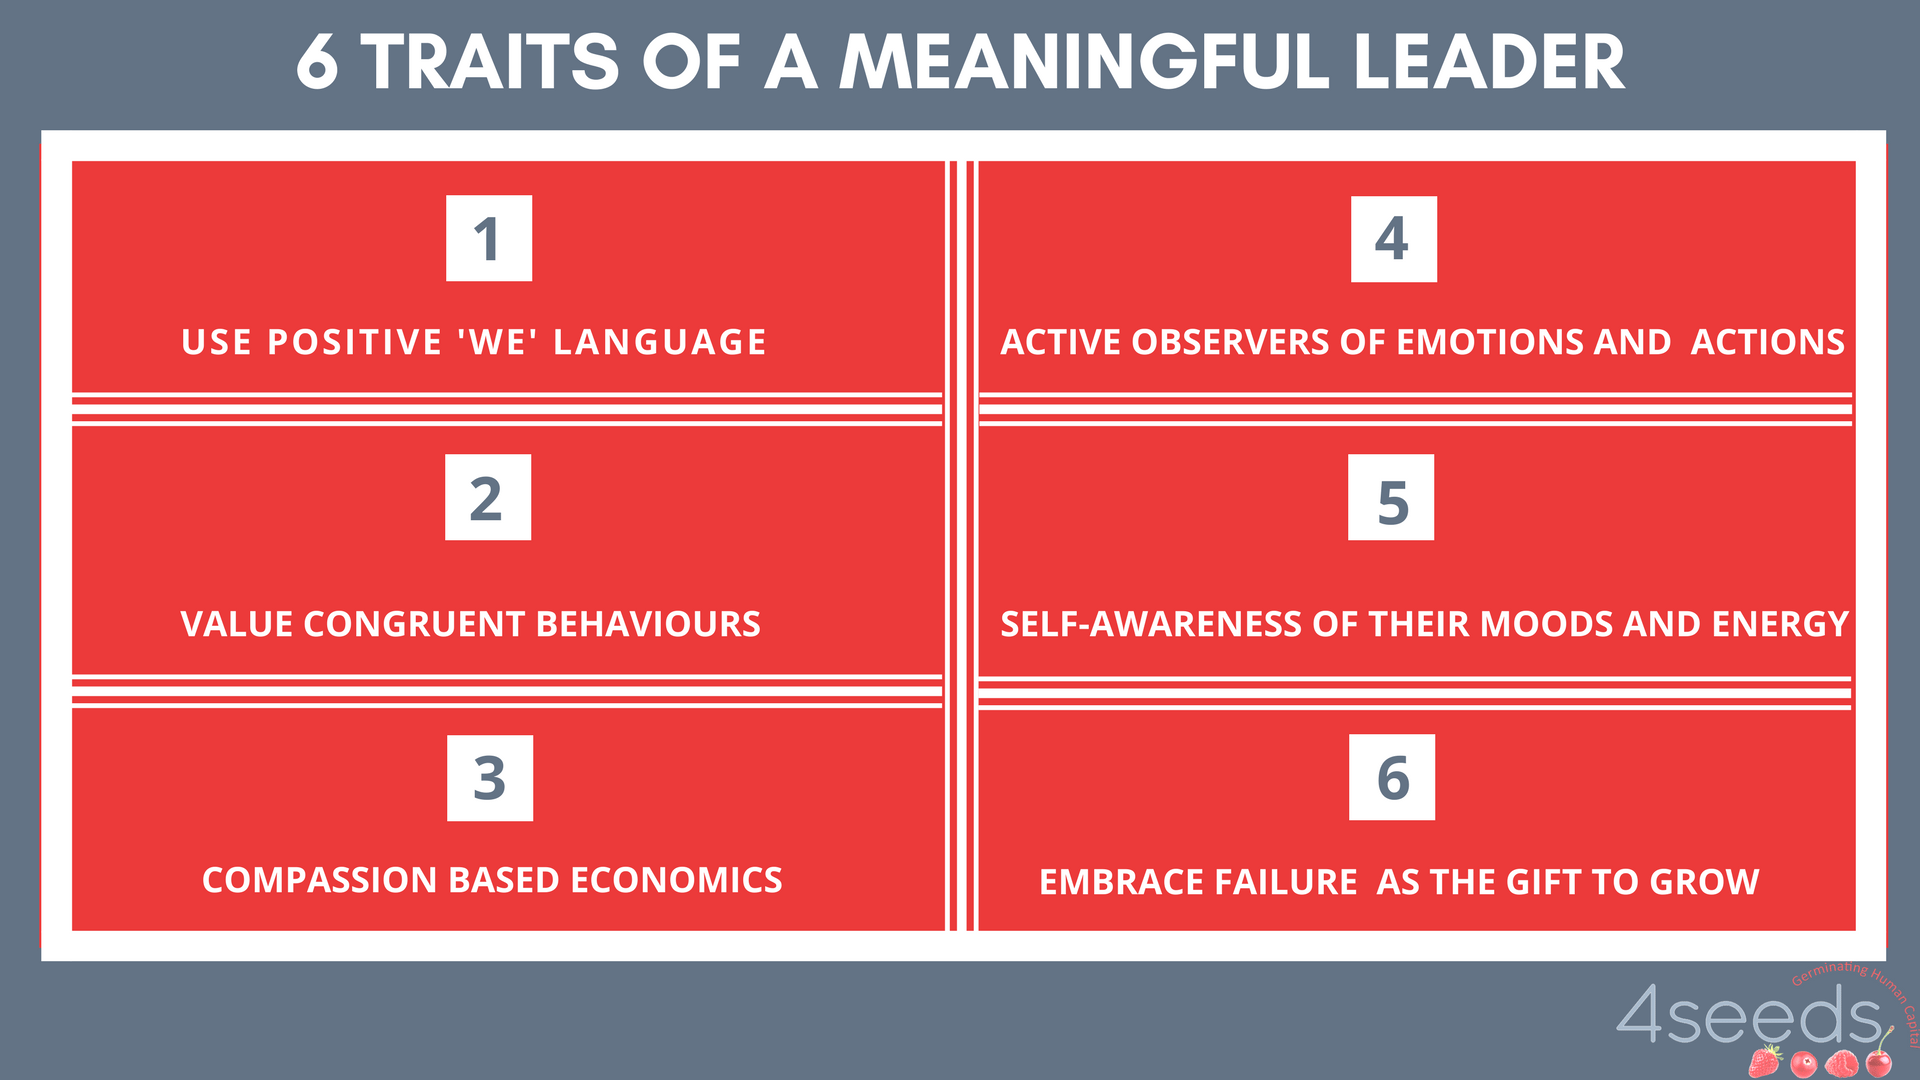 6 Practical Steps to Become A Meaningful Leader - 4Seeds